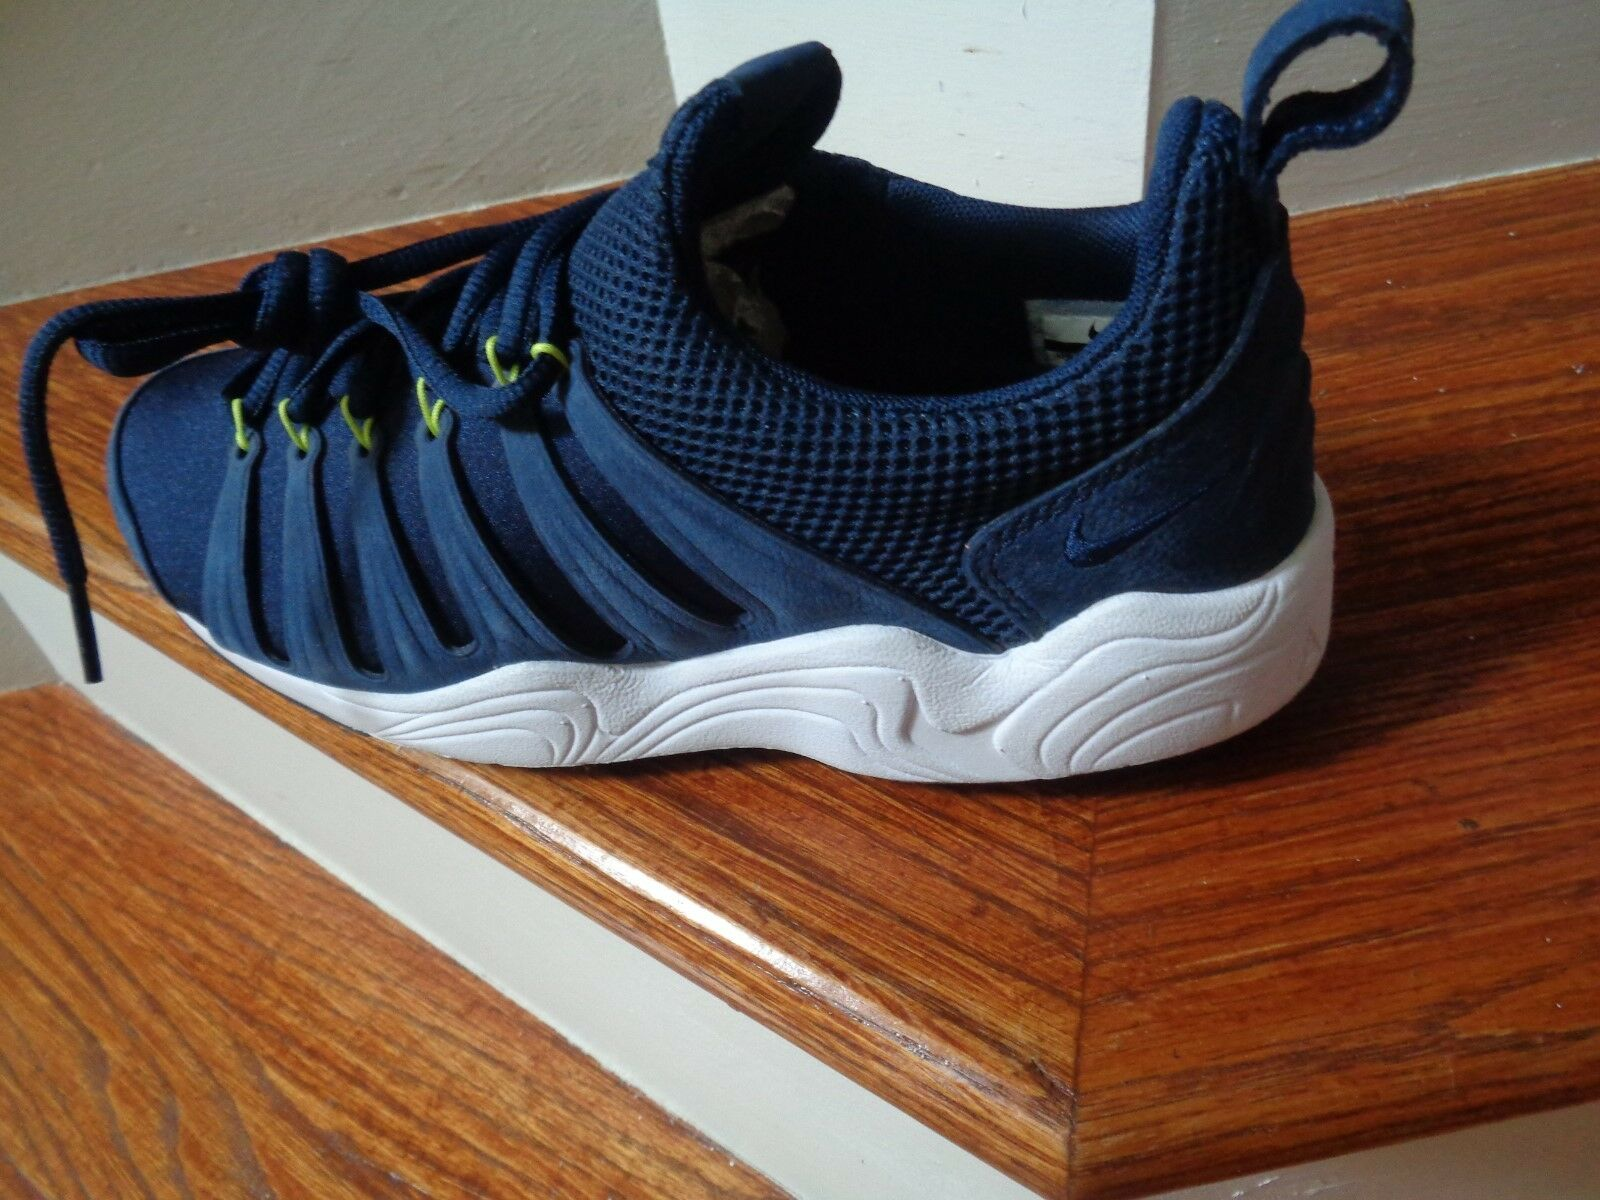 Nike Air Zoom SPIRIMIC QS Men's Running Shoes, 881983 400 Size 8 NEW